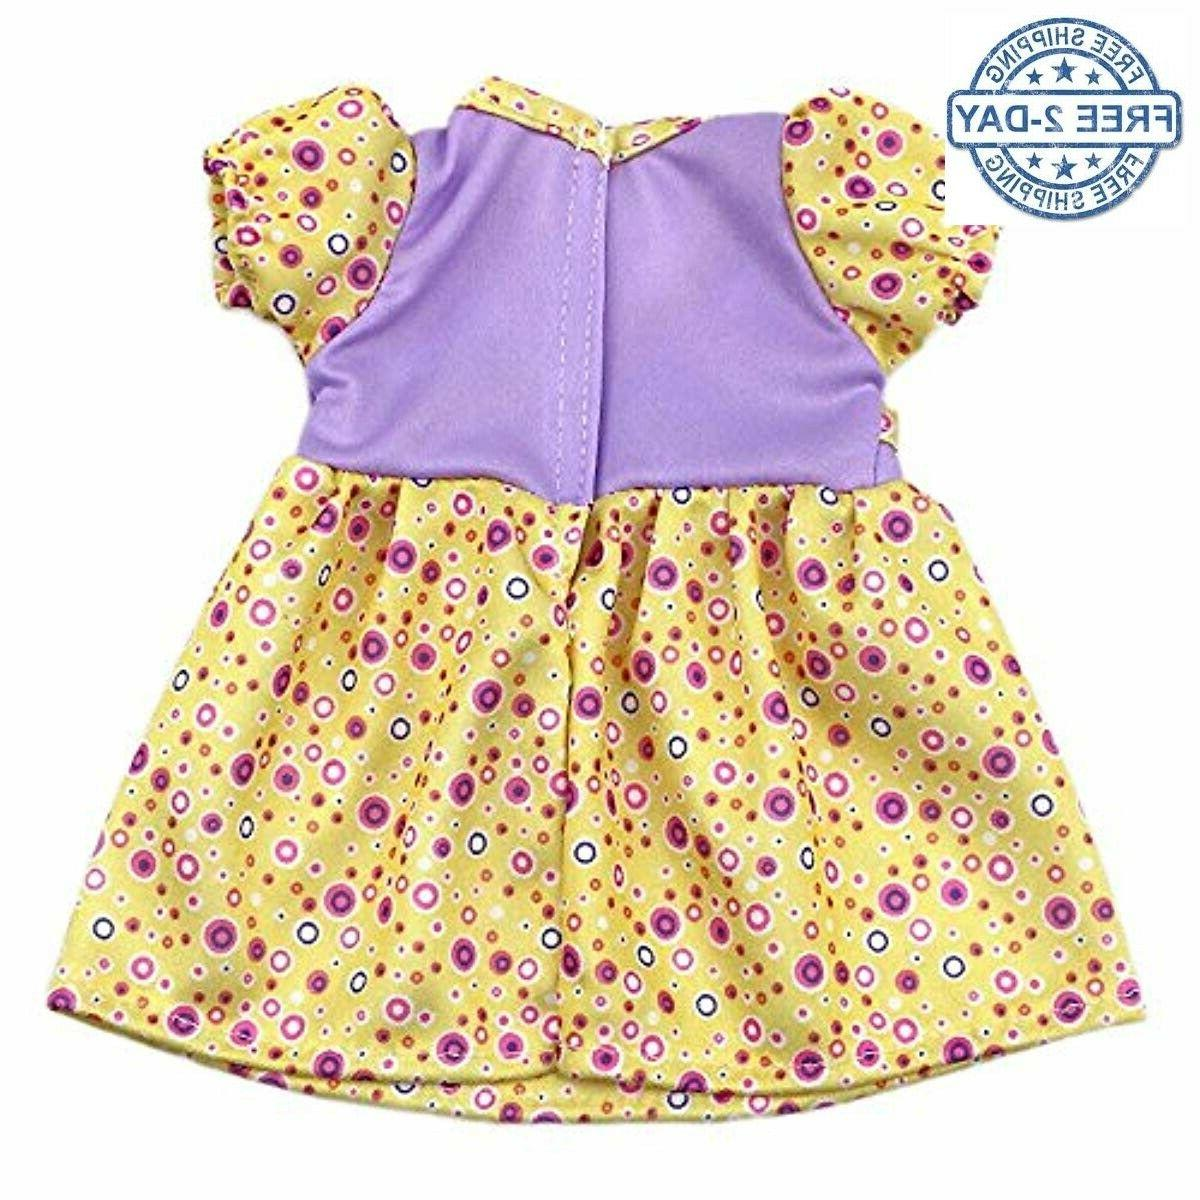 Doll Dress Clothes for Baby Bitty Doll, Small Decoration Doll Dr...